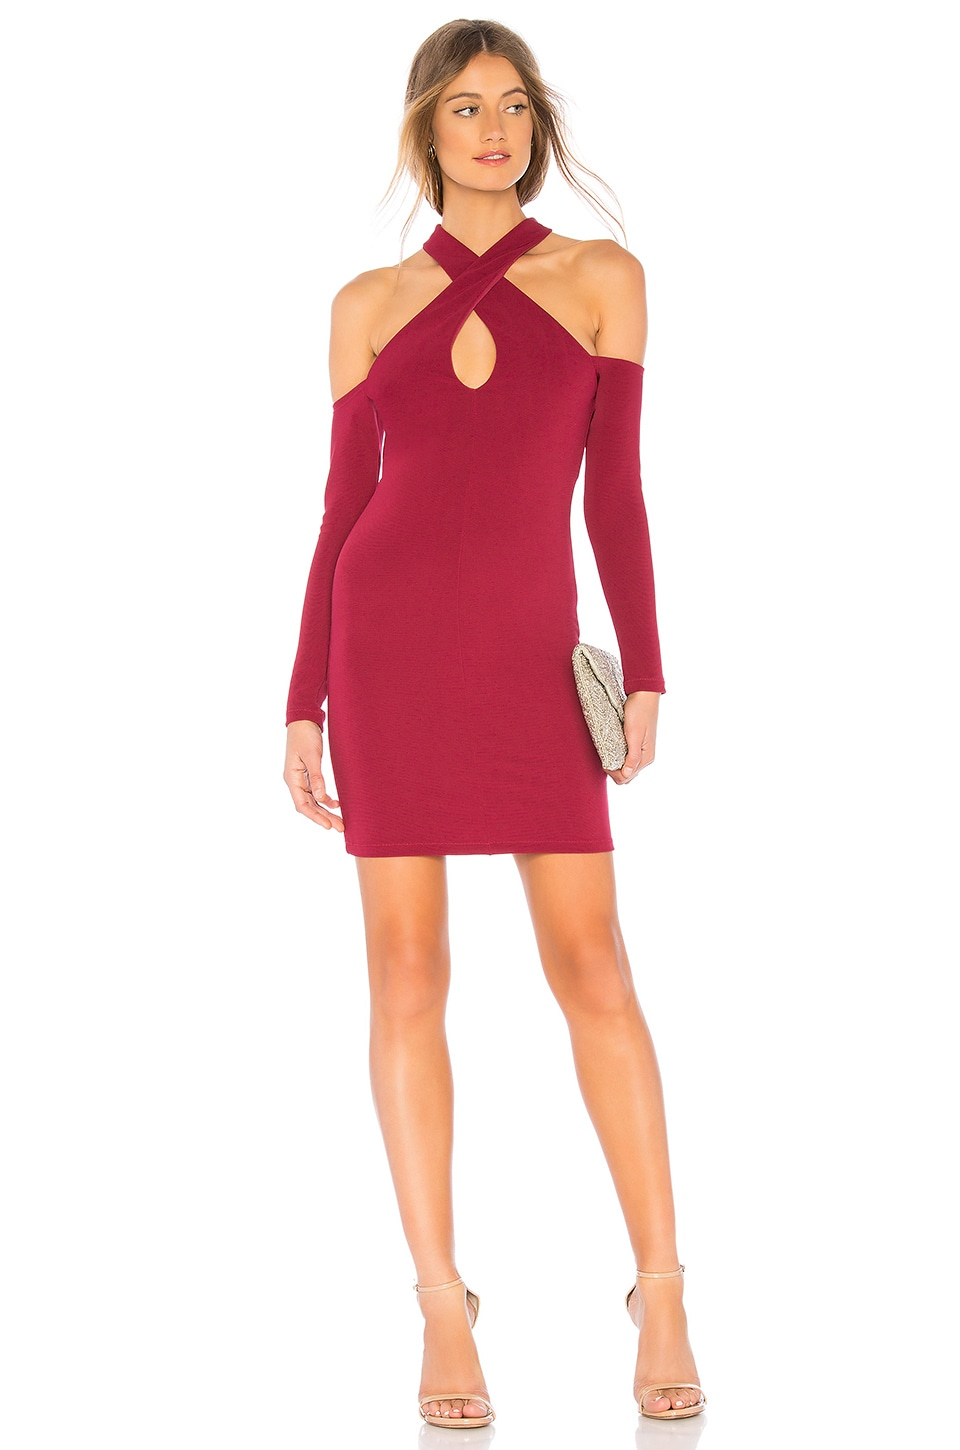 NBD Dominique Dress in Burgundy